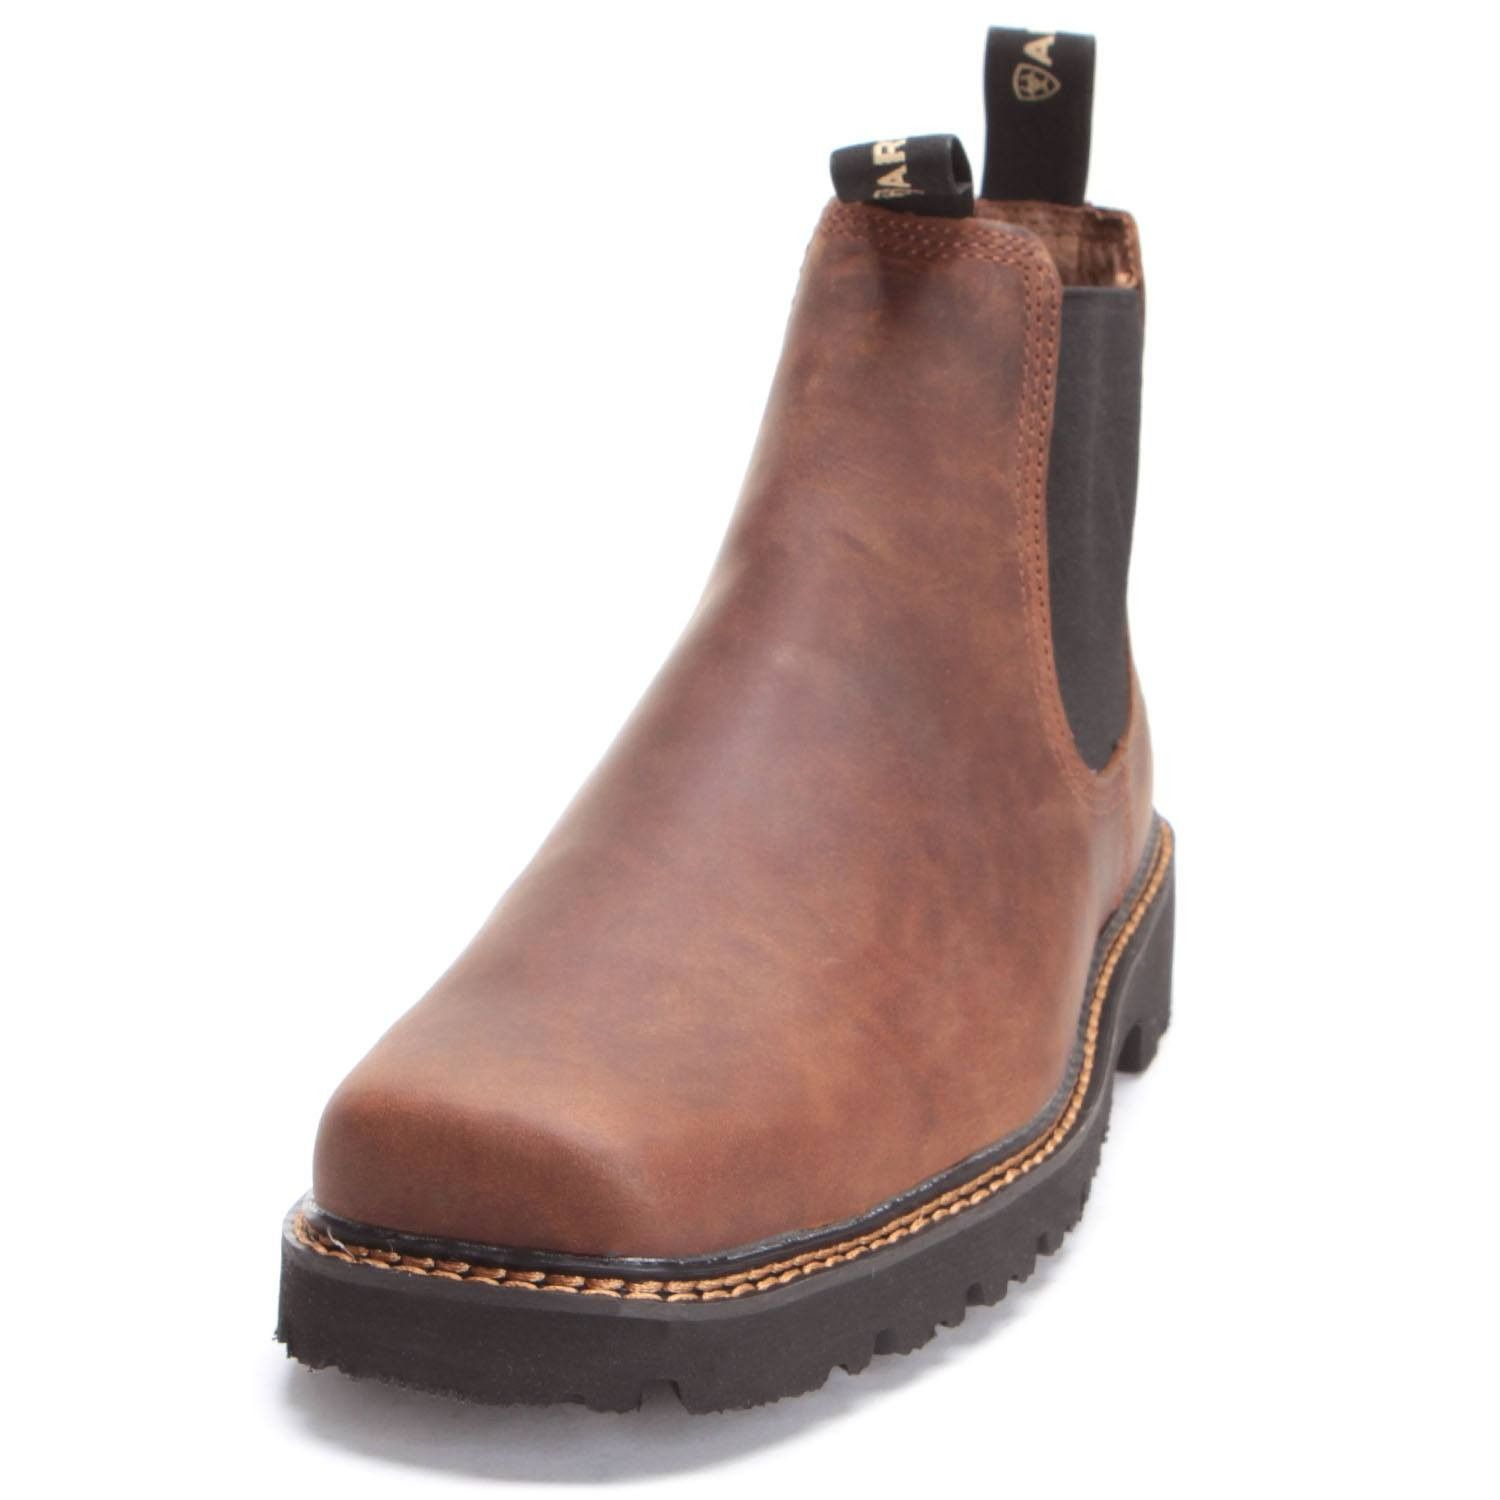 454dd925e2e Ariat Mens Spot Hog Distressed Square Toe Work Boots | Boots in 2019 ...